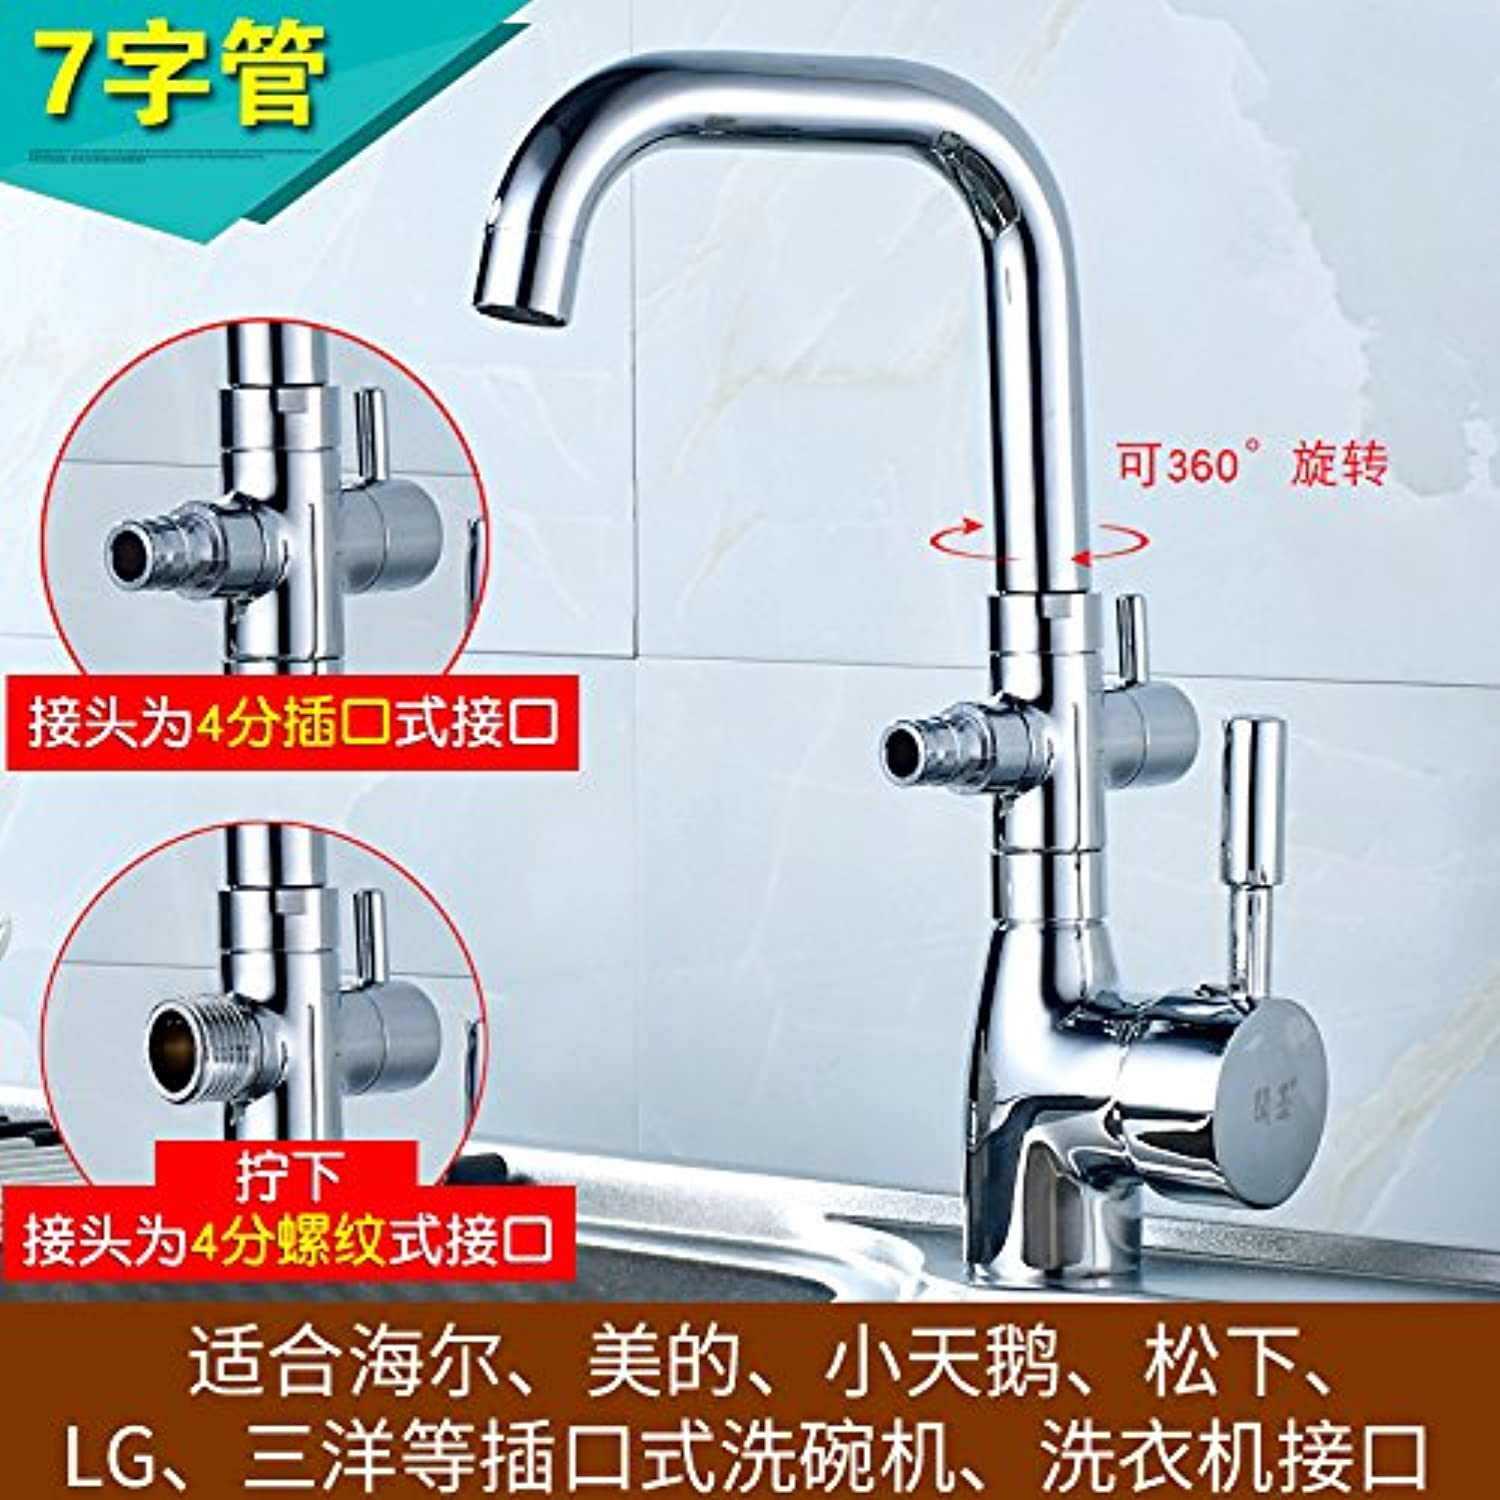 Gyps Faucet Wash Basin Single-Lever Mixer Tap Washbasin Tap 46 Minutes Siemens Kitchen Tap Warm and Cold Food Throughout Copper Sink Tap 7 Wor